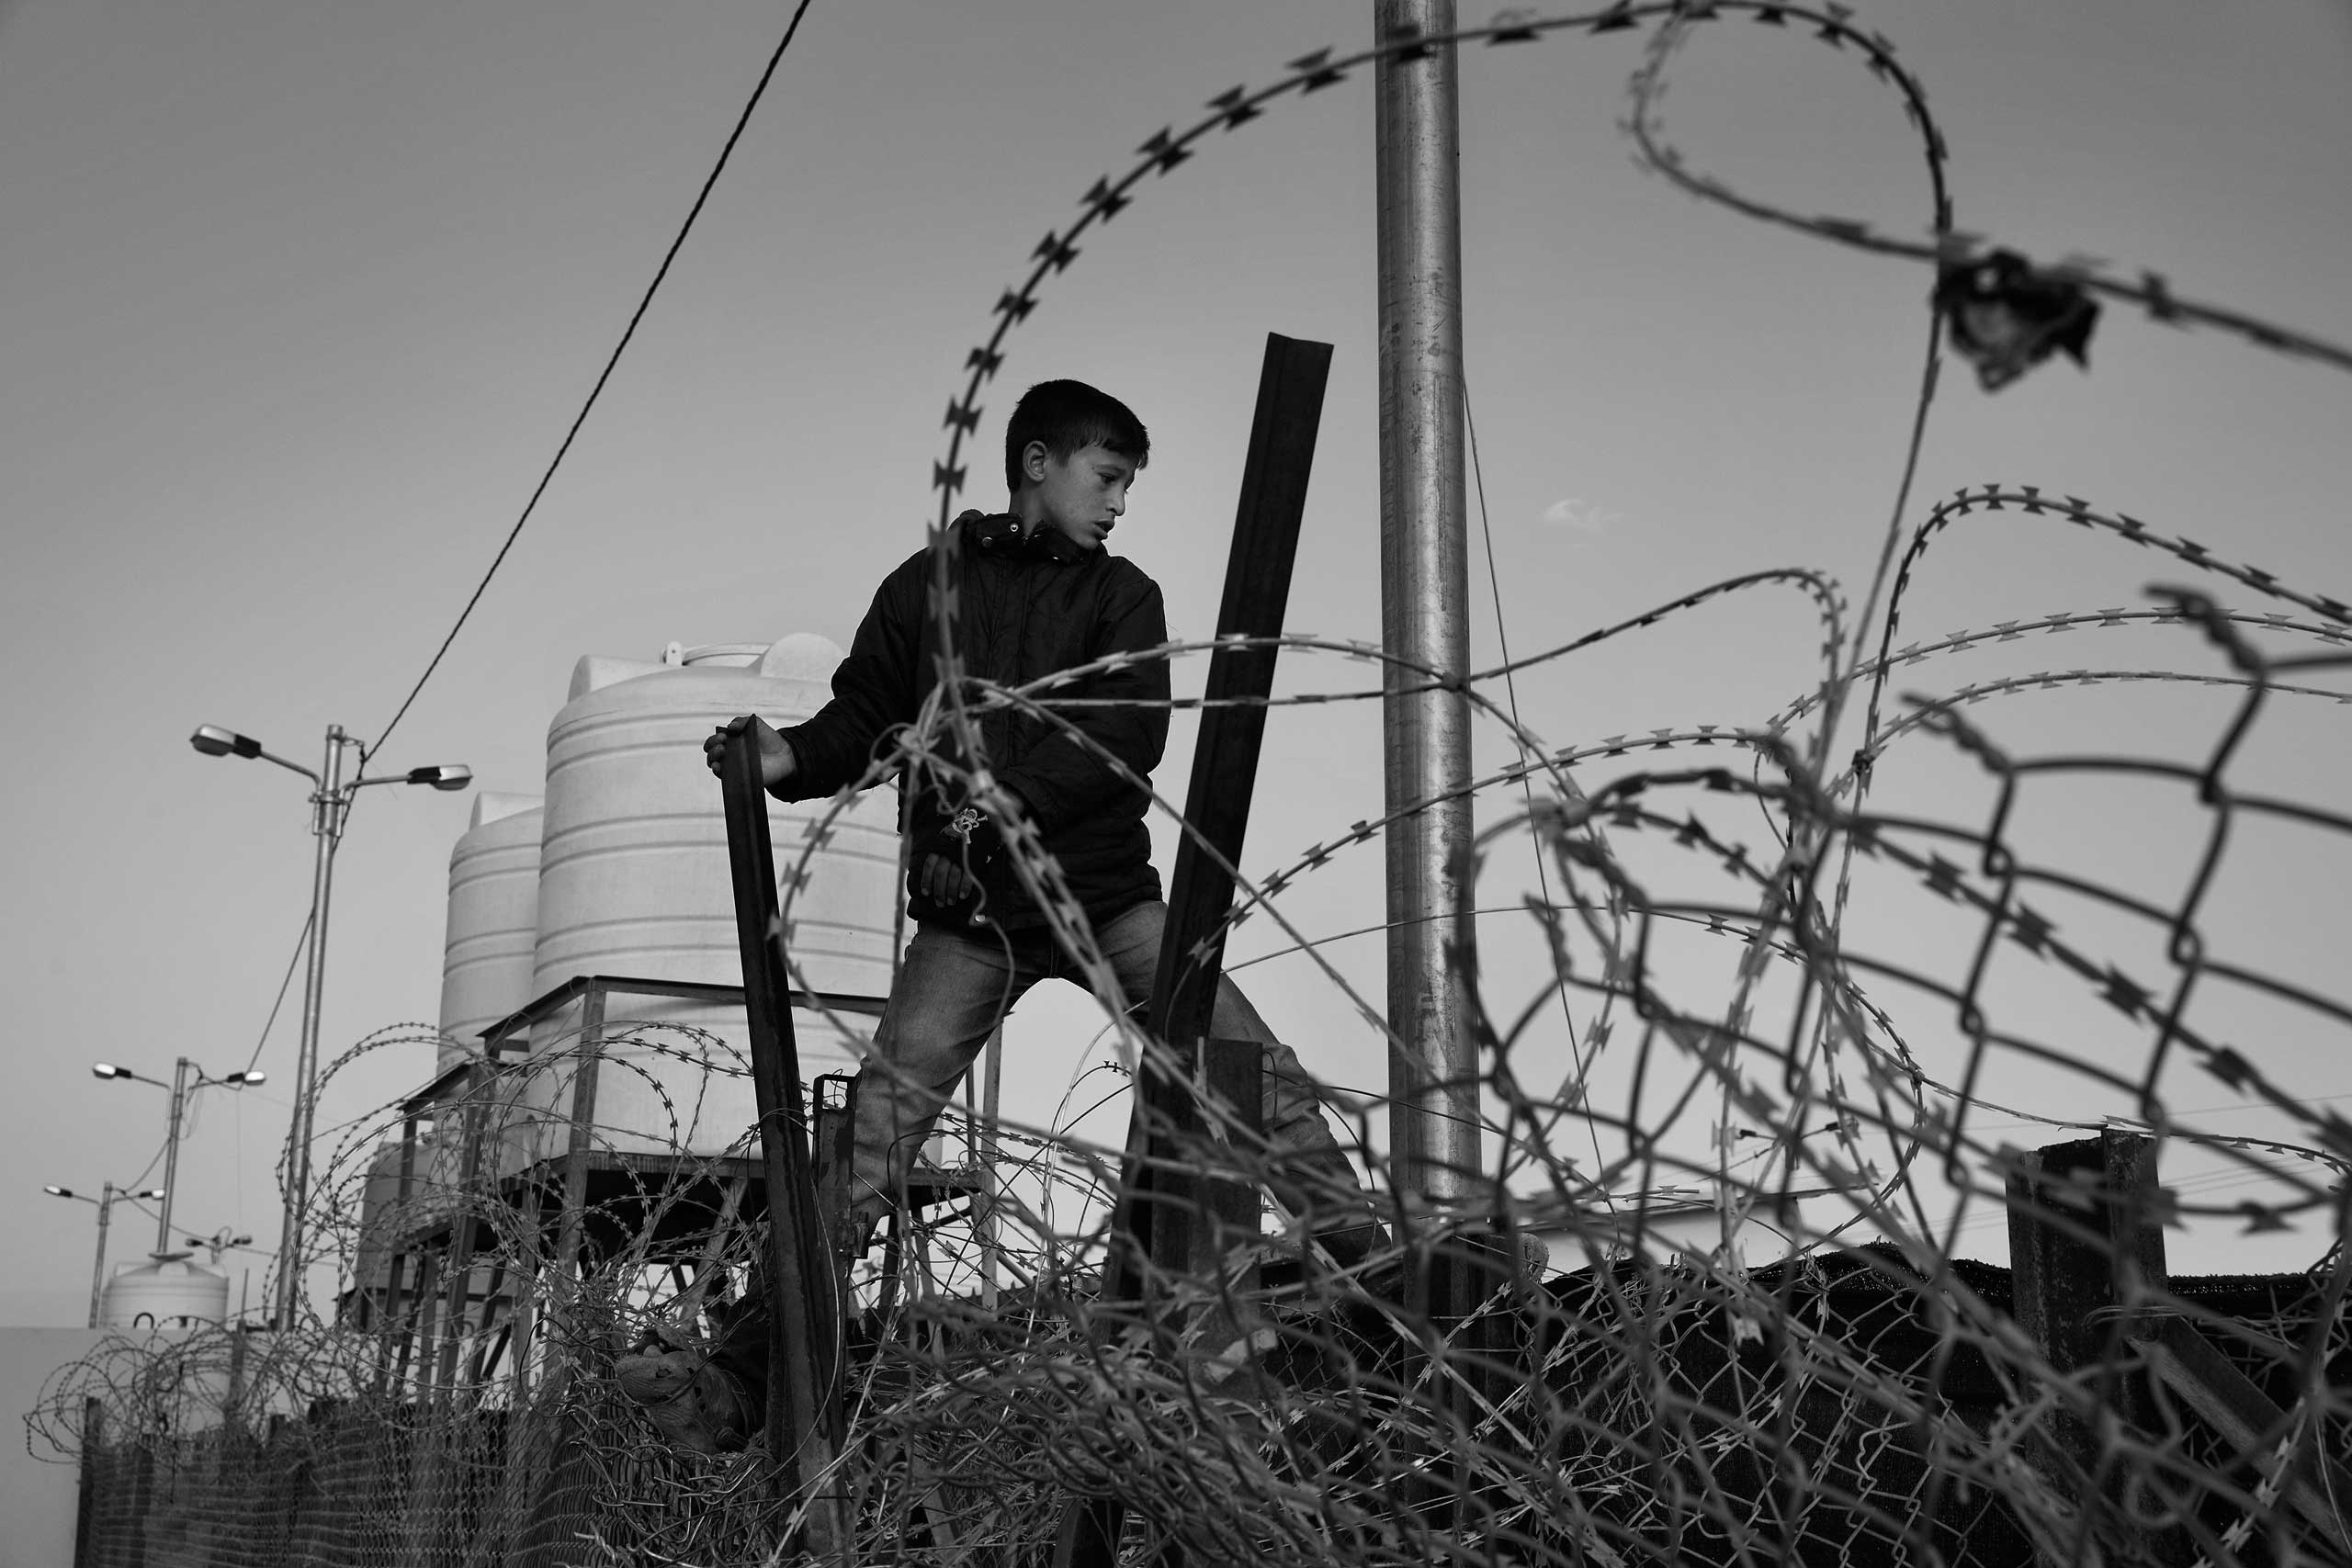 December 2013. Za'atari refugee camp, Jordan. Boys climb the fences to reach the newly arrived refugees and sell them bread, cigarettes and tea.